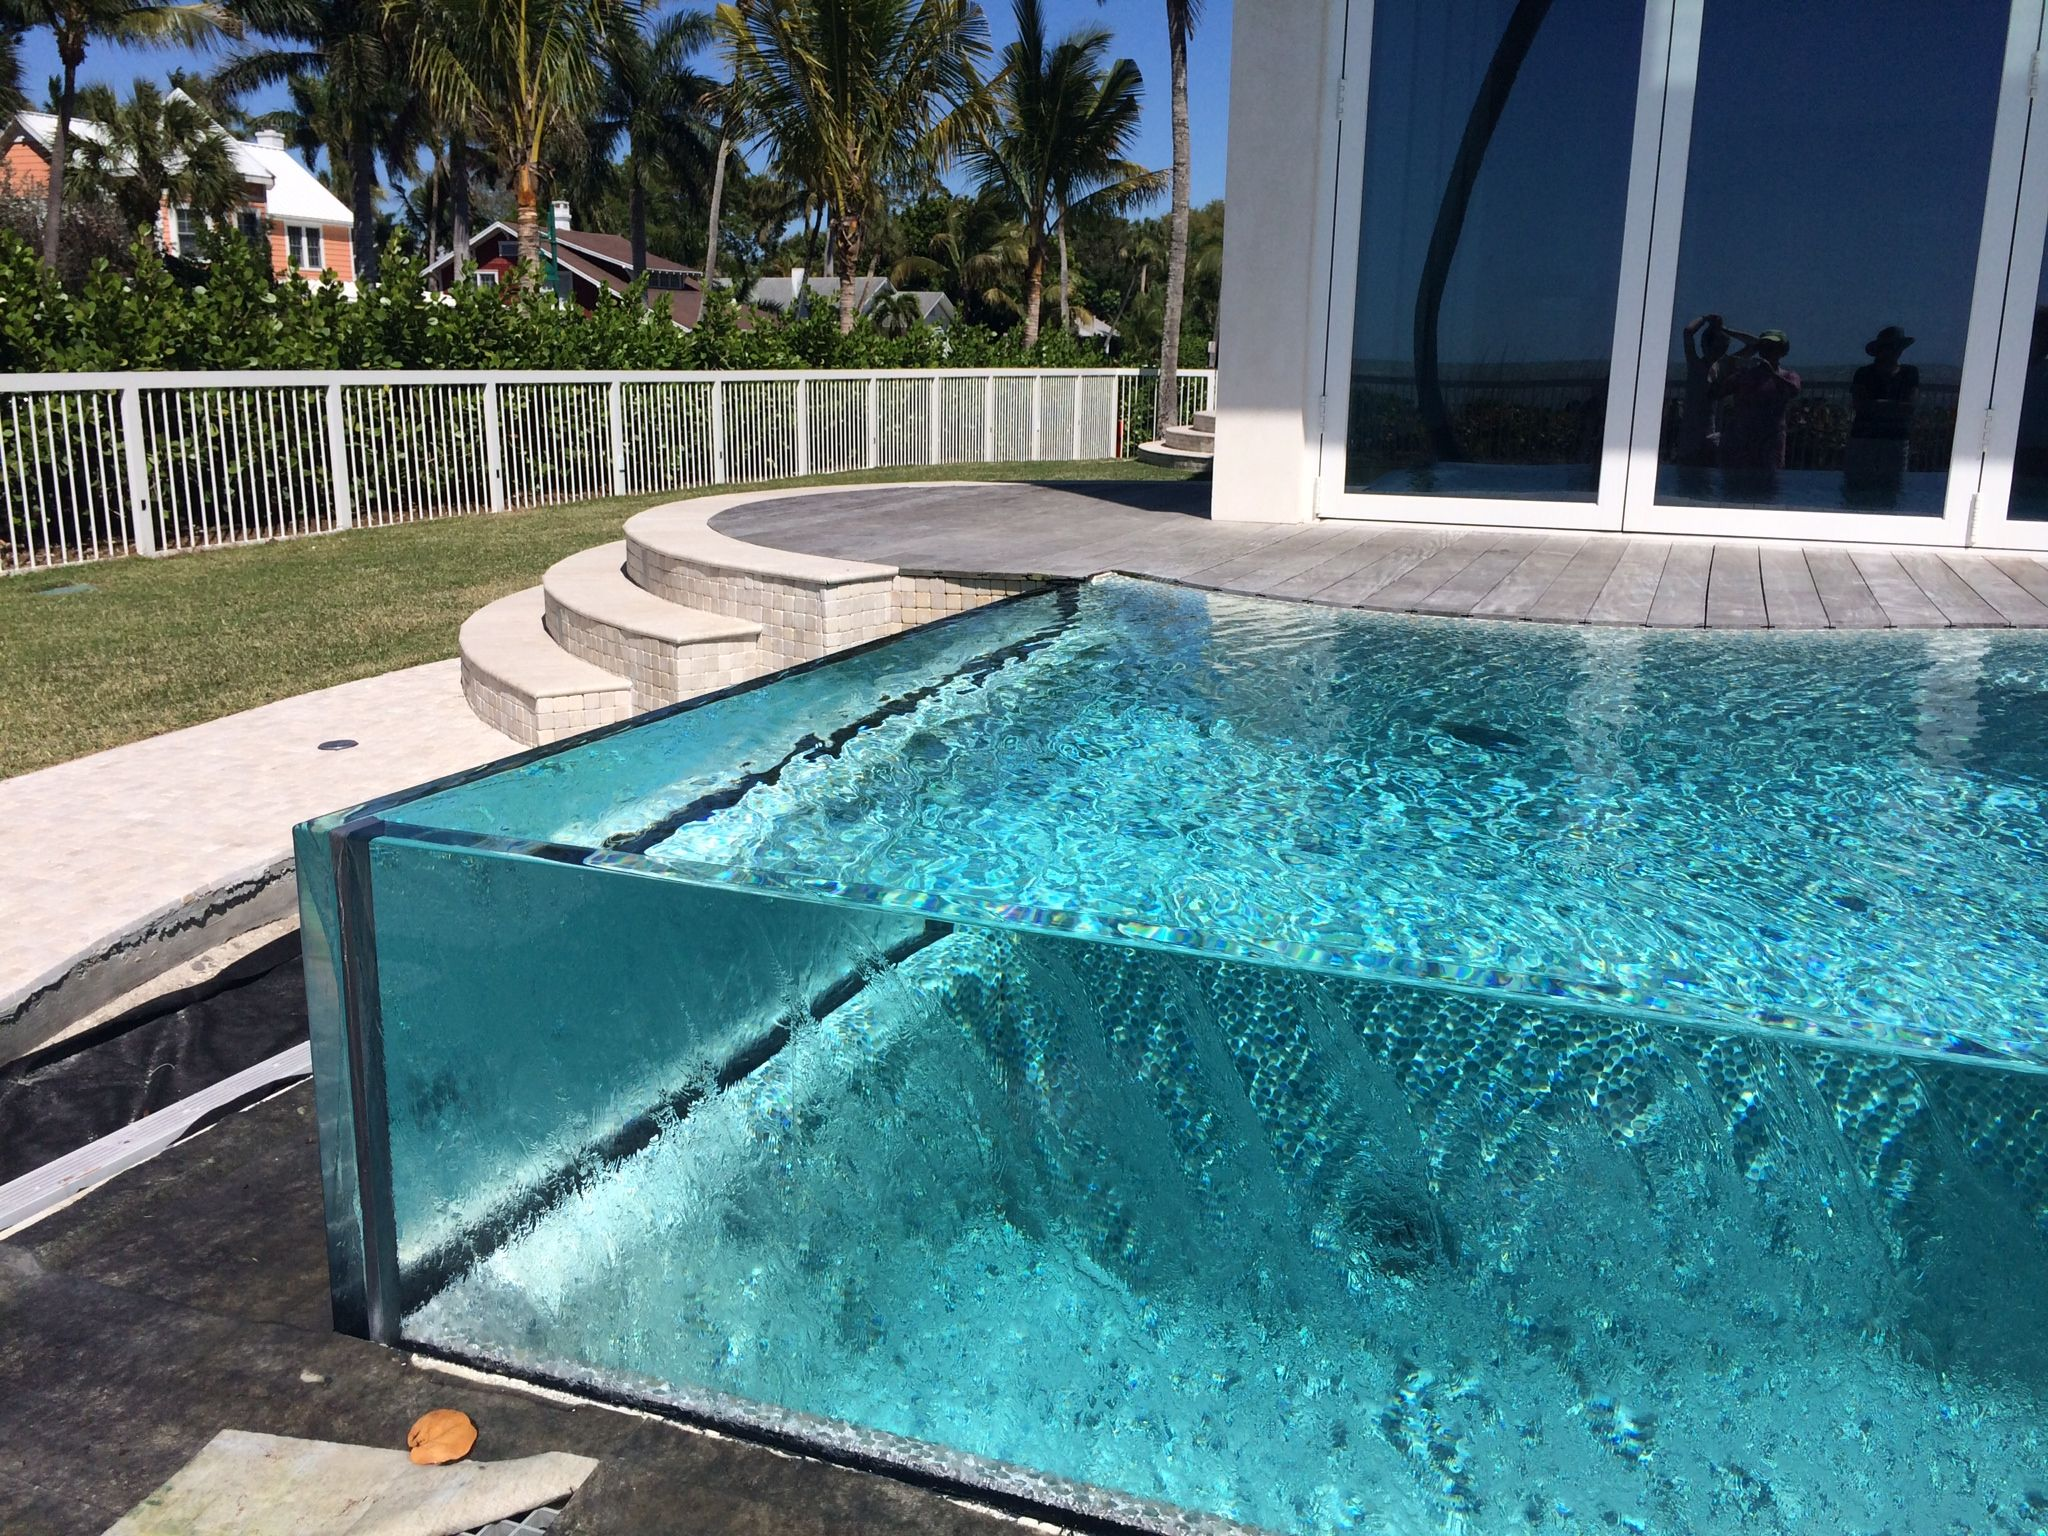 Glass edge pool swimming pools pinterest glass for Glass swimming pool